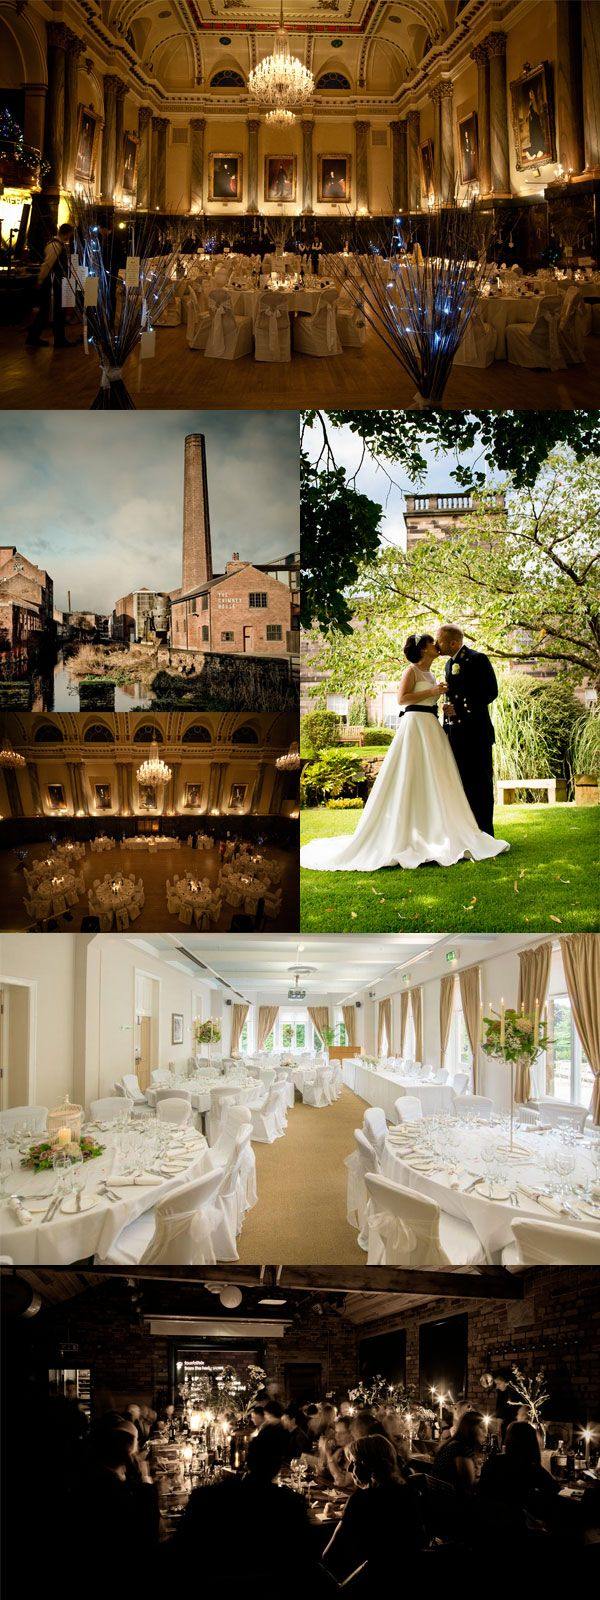 3 Unique Wedding Venues In Sheffield Yorvenuecouk 3 Unique Wedding Venues In